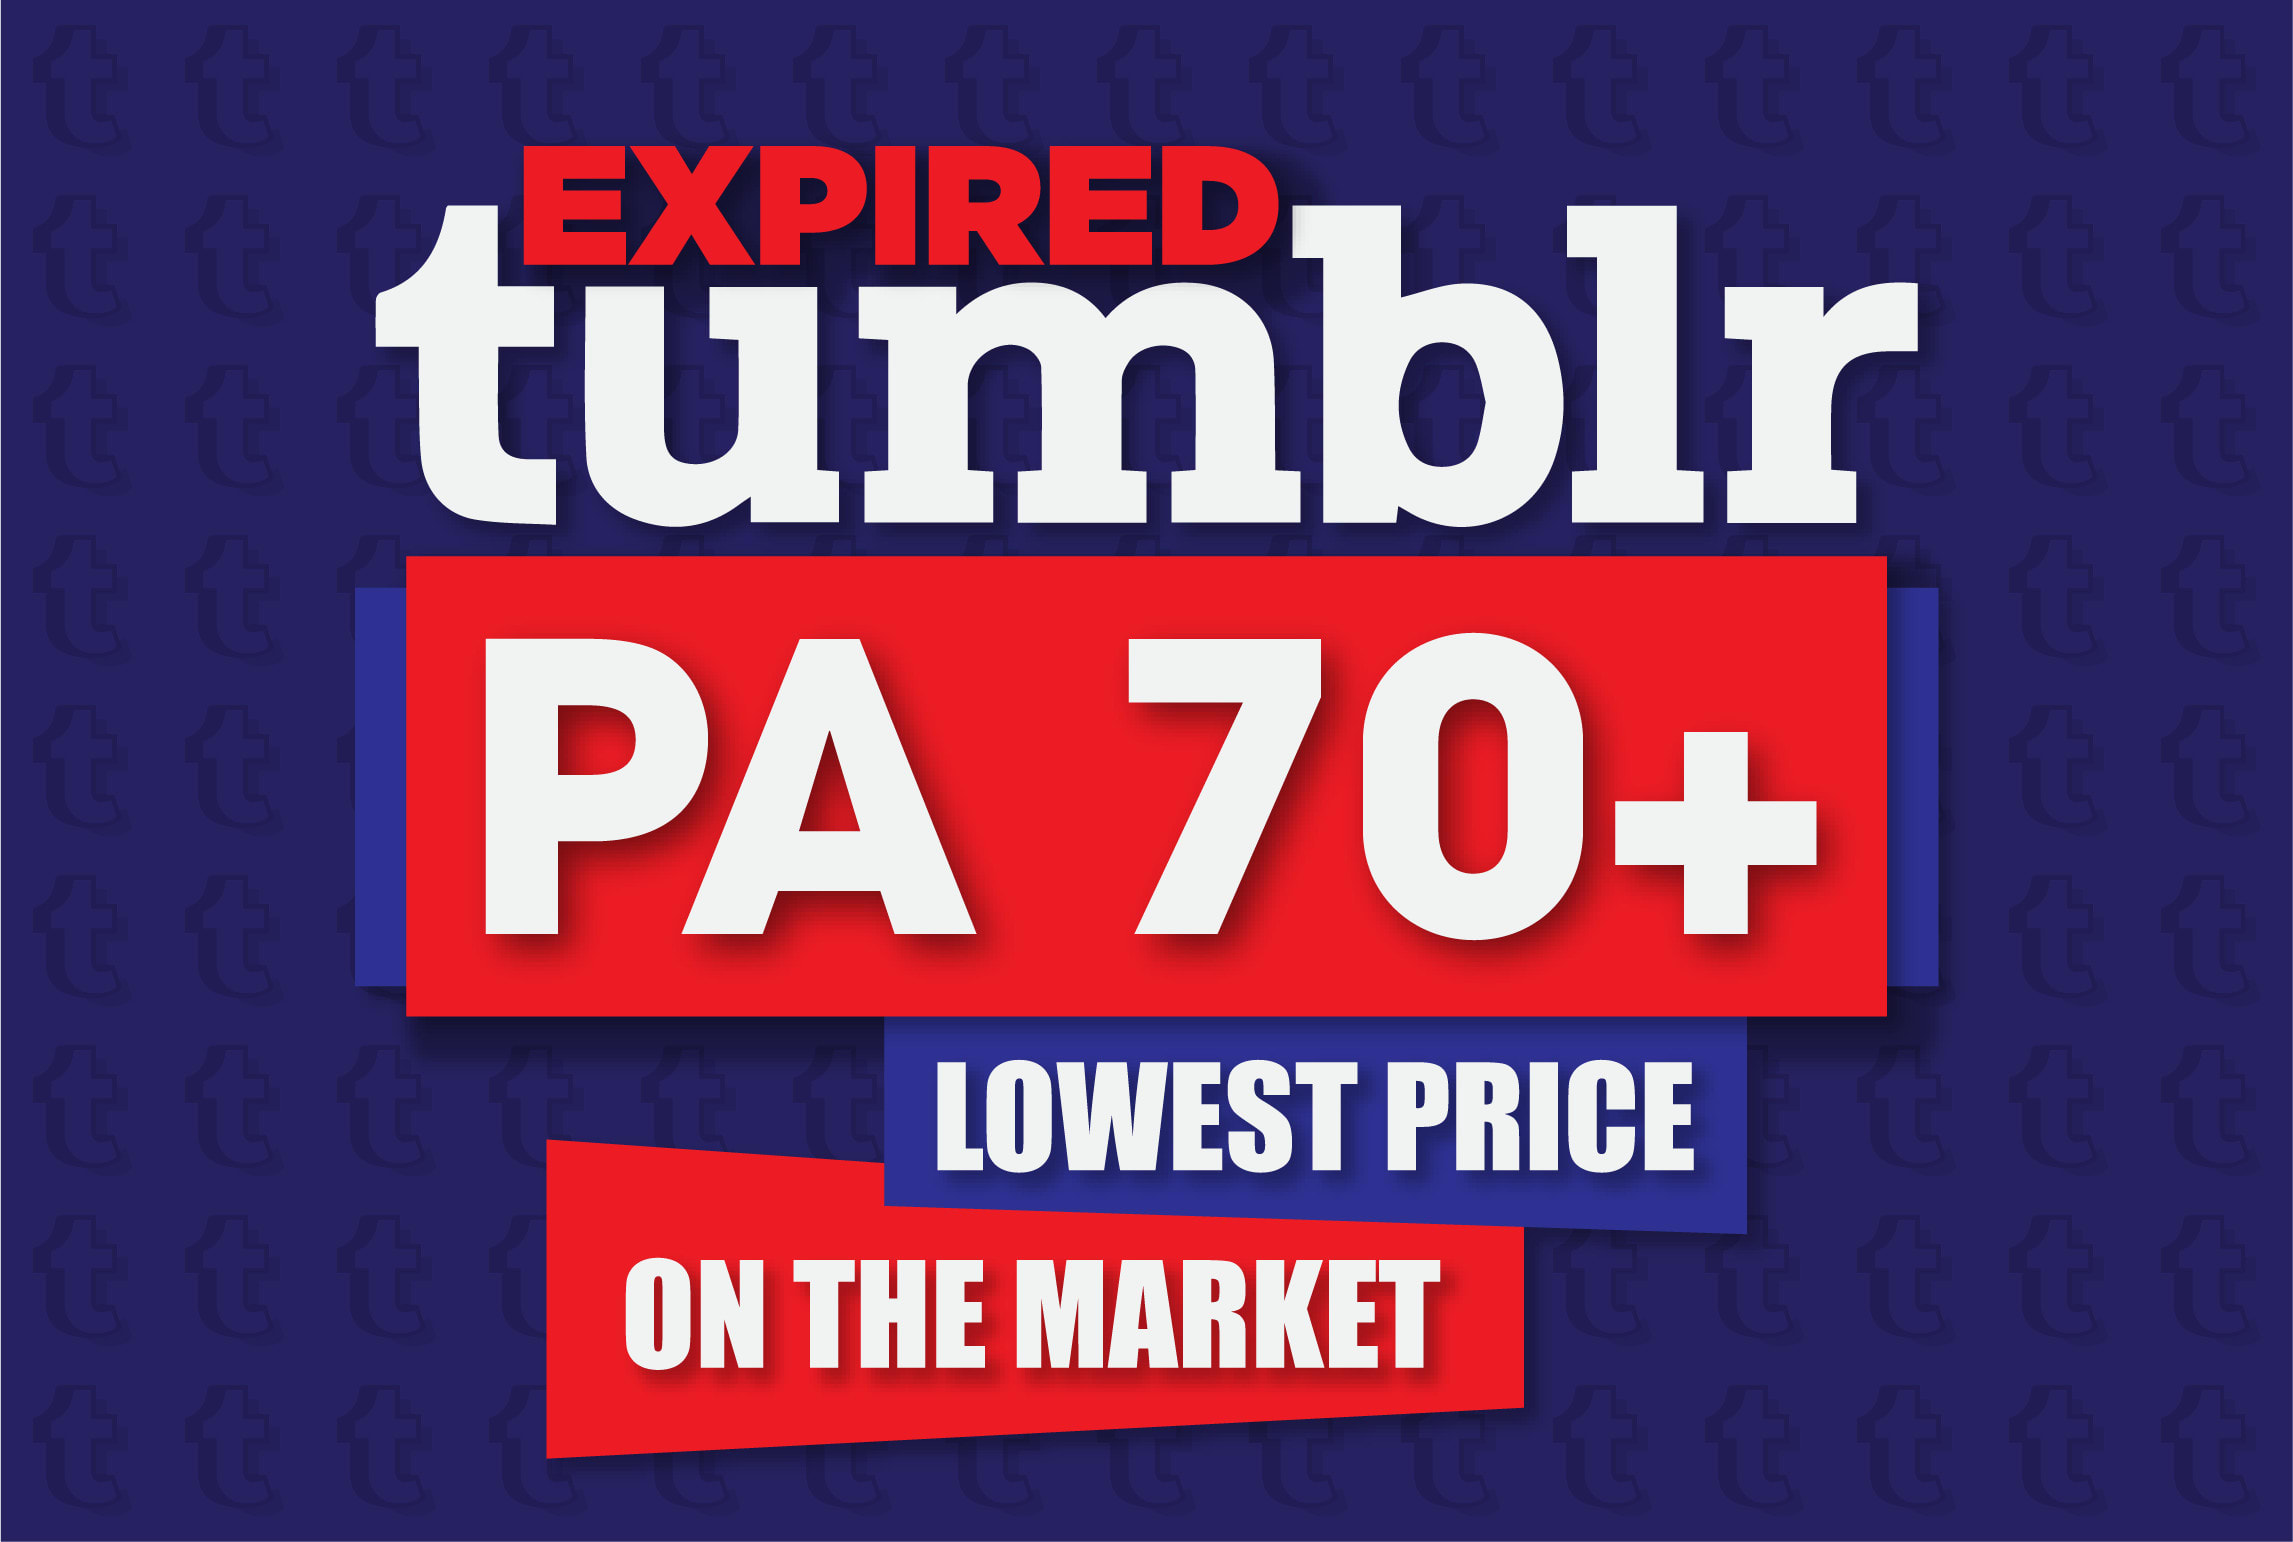 I will register 40 expired tumblr blogs pa 70 plus with backlinks